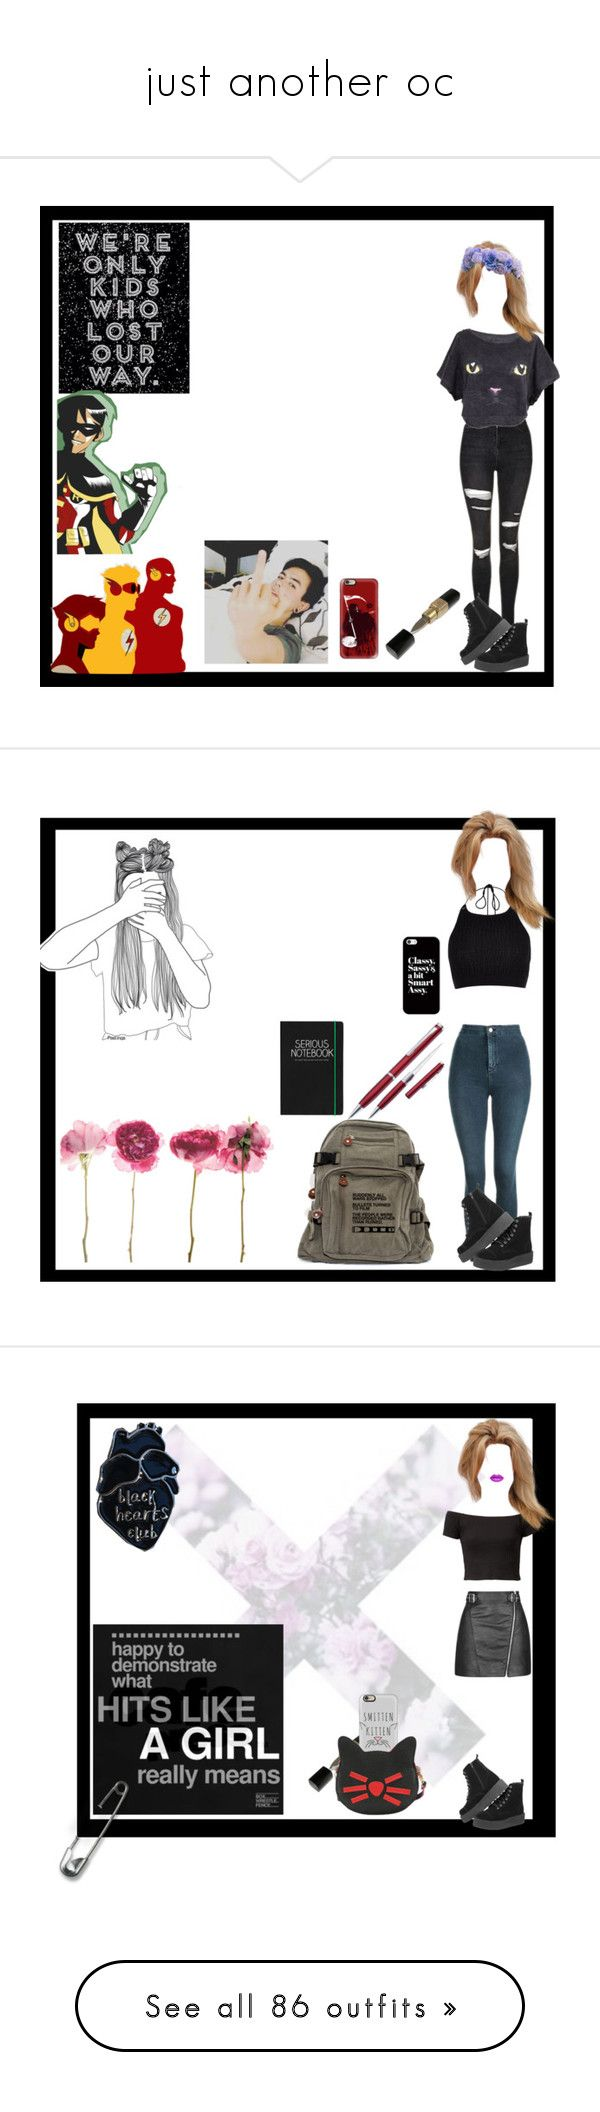 """""""just another oc"""" by thin-mint on Polyvore featuring Topshop, T.U.K., Casetify, River Island, KEEP ME, Happy Jackson, The Lip Bar, Handle, Aphero and Ultimate"""